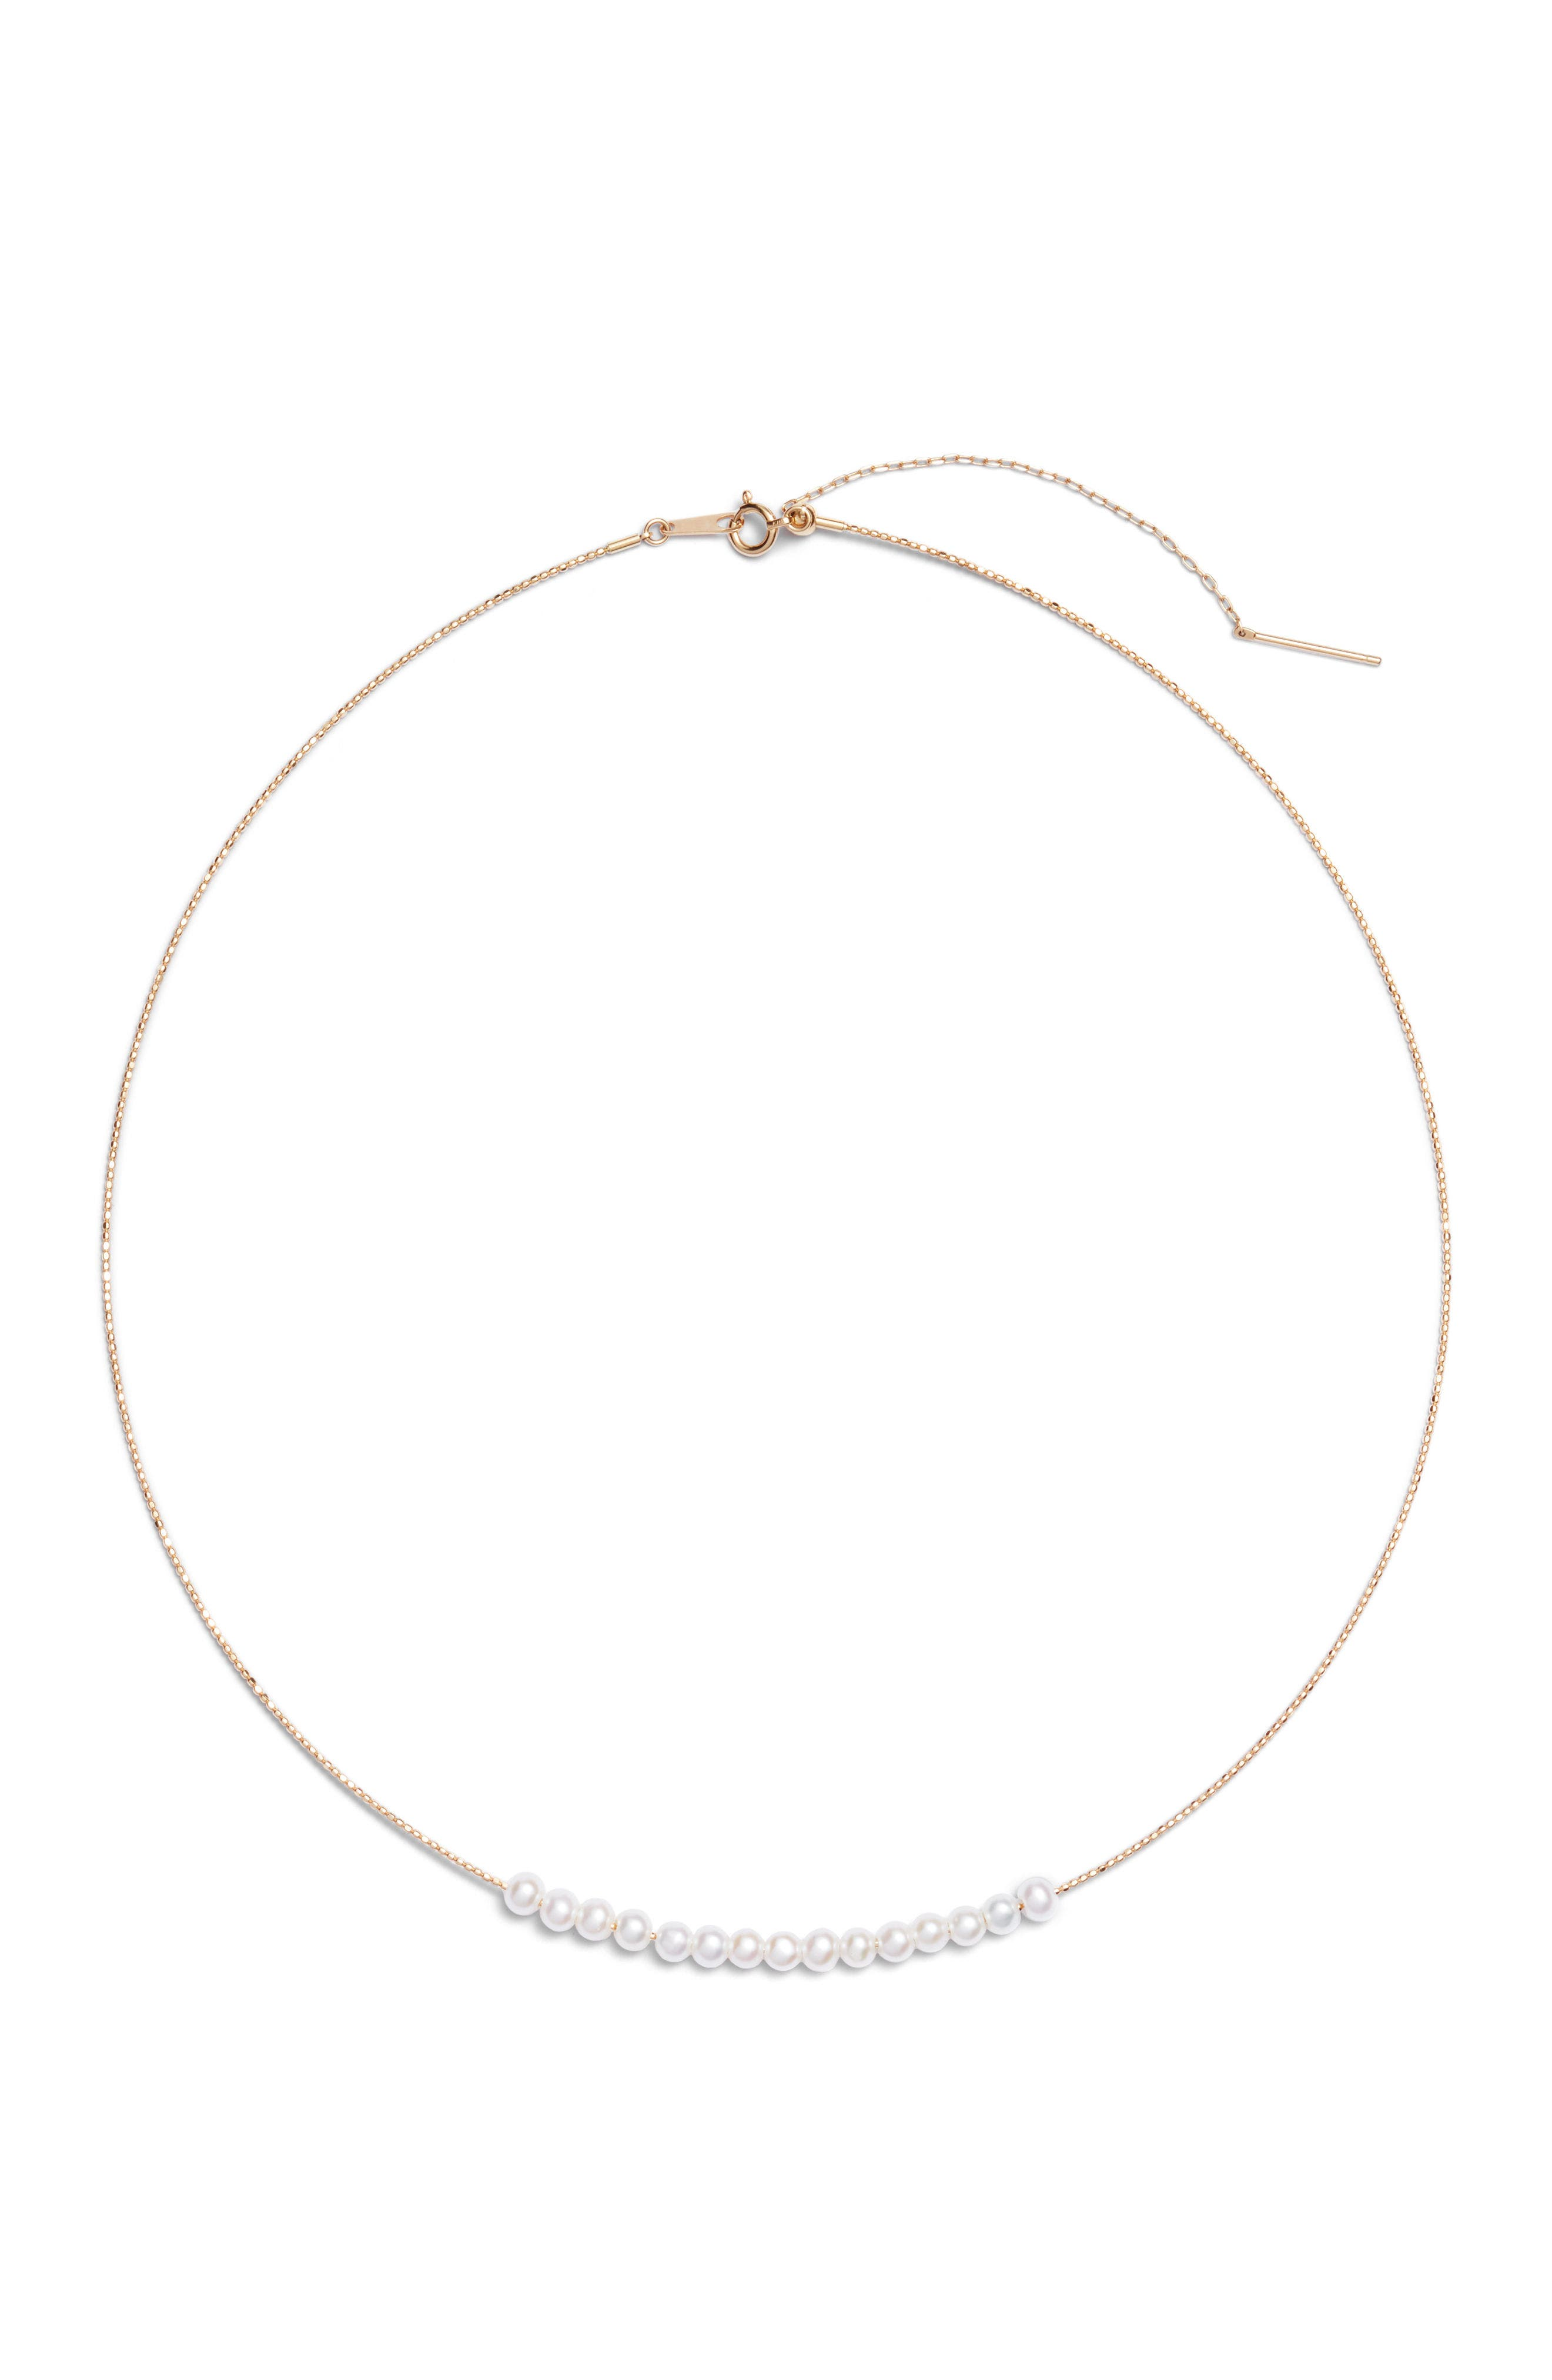 Baby Pearl Skinny Choker Necklace,                         Main,                         color, YELLOW GOLD/ PEARL